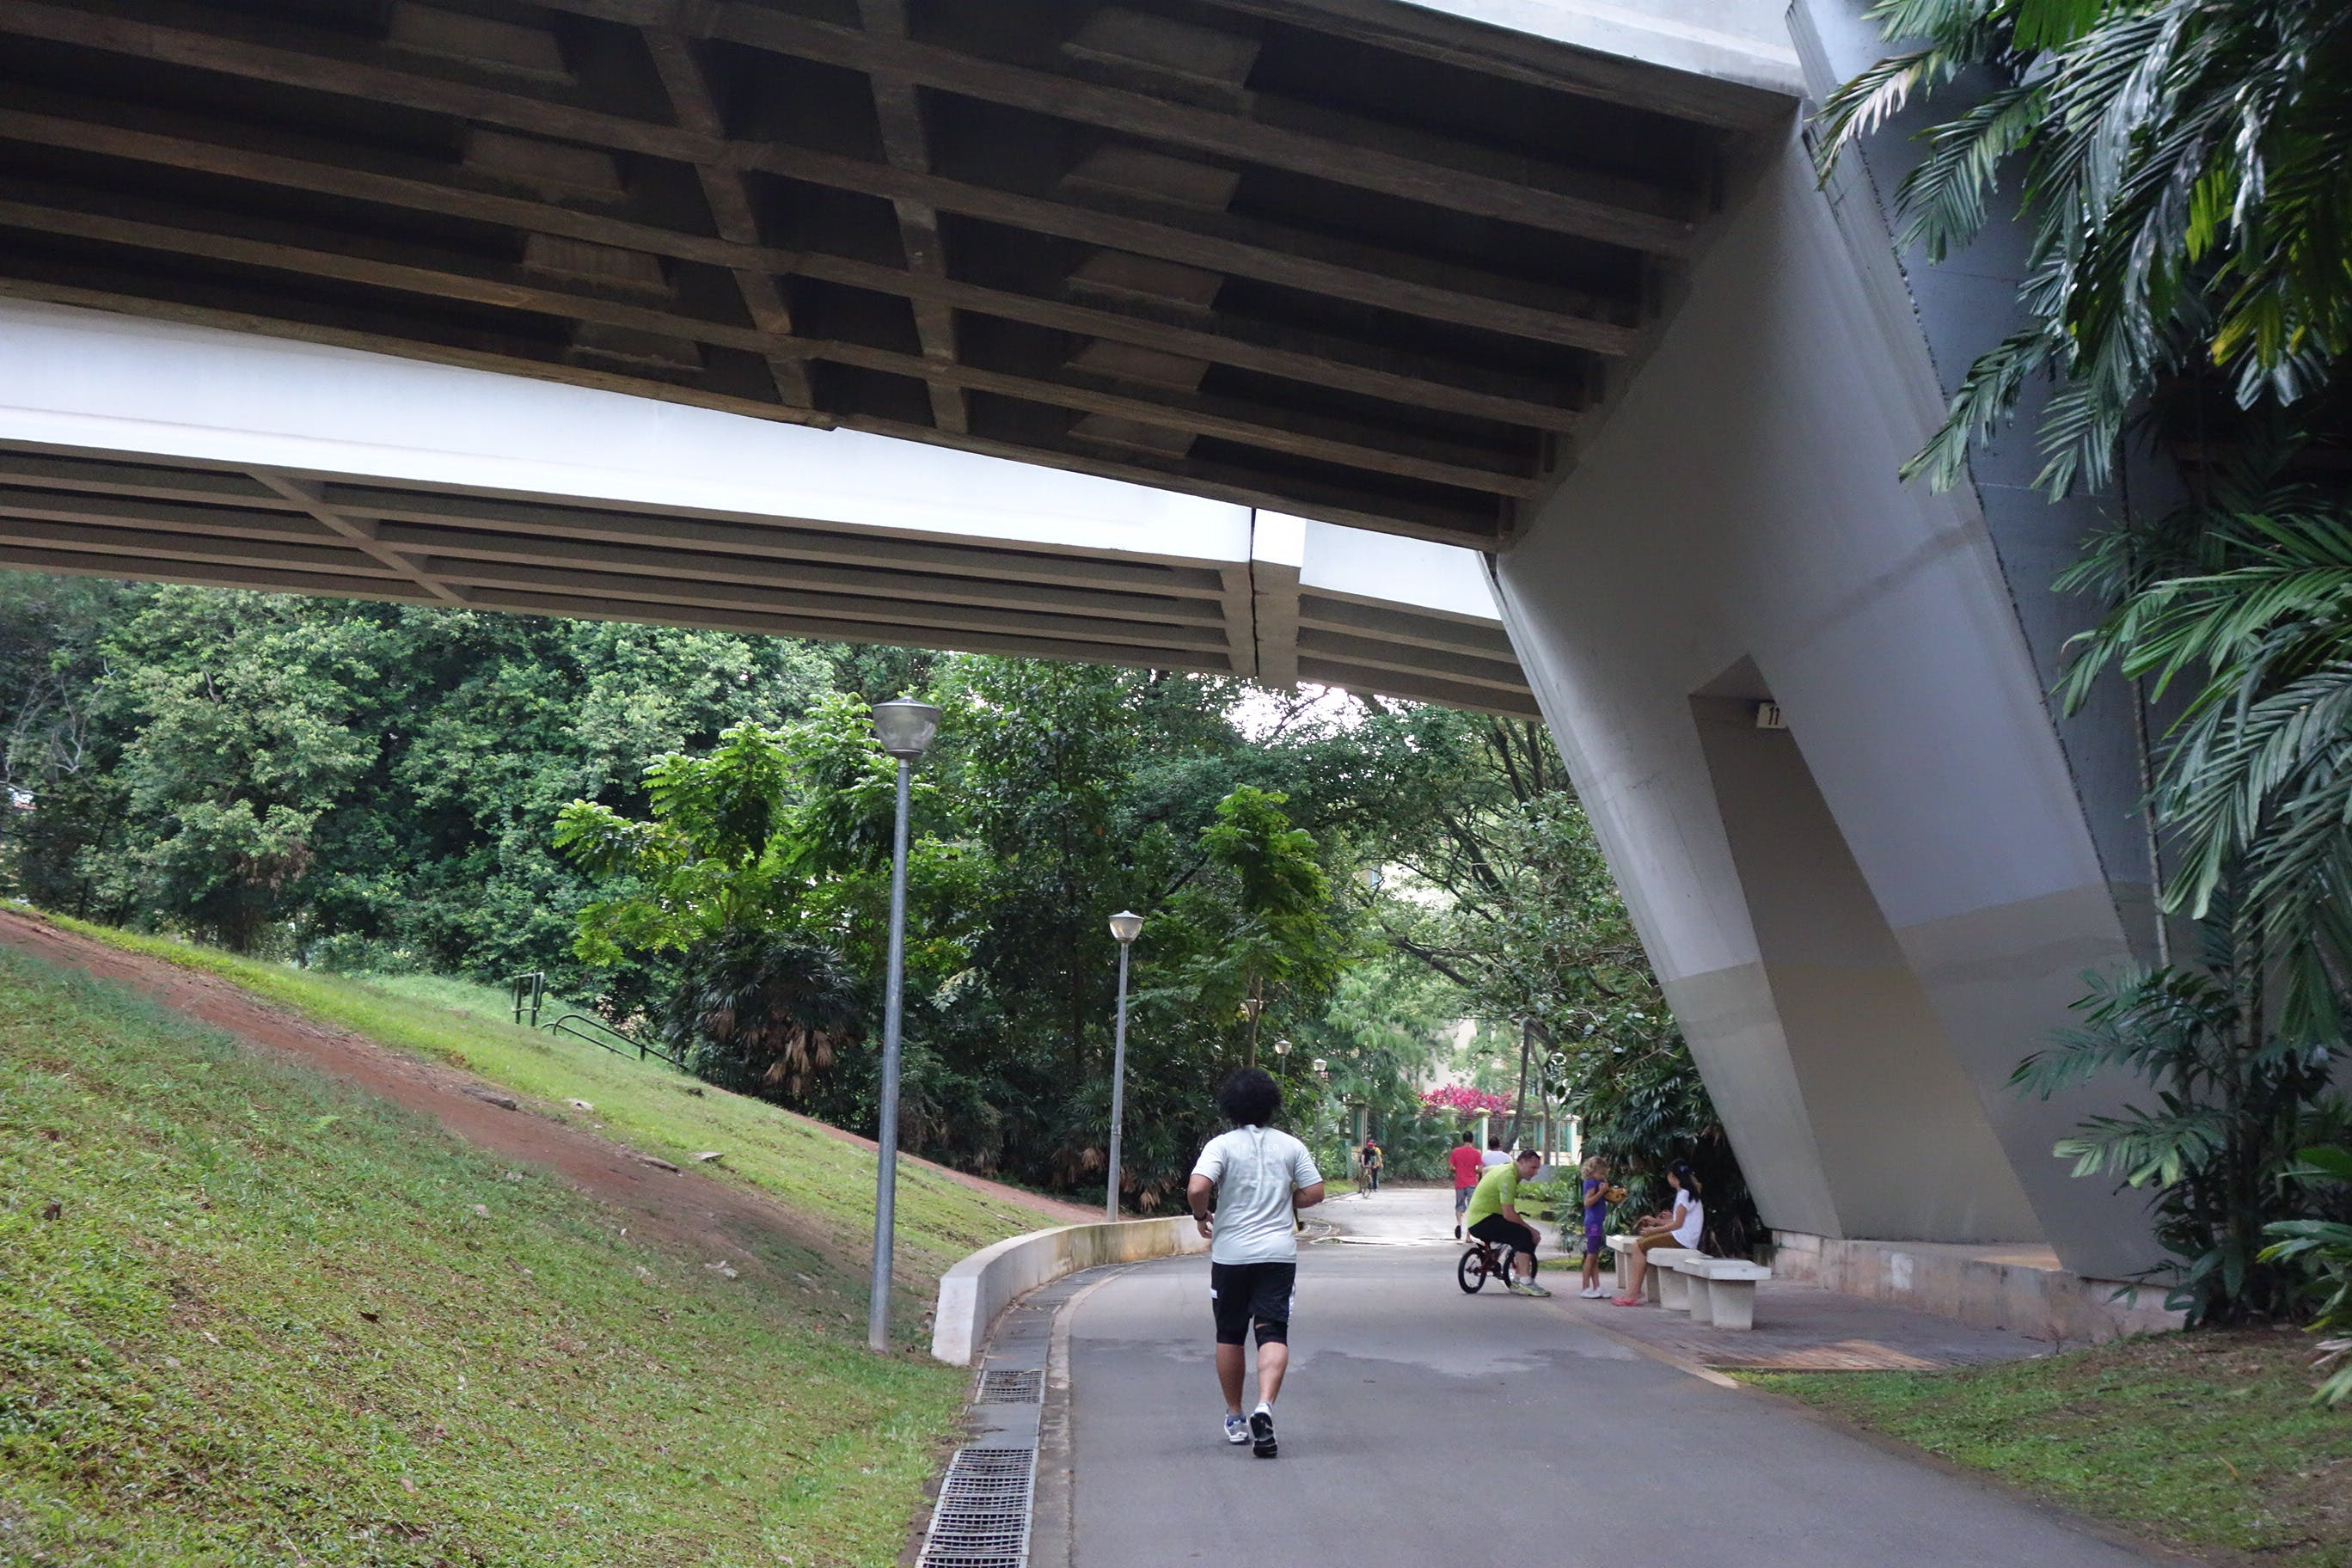 Jogging at the scenic Sungei Pandan park connector